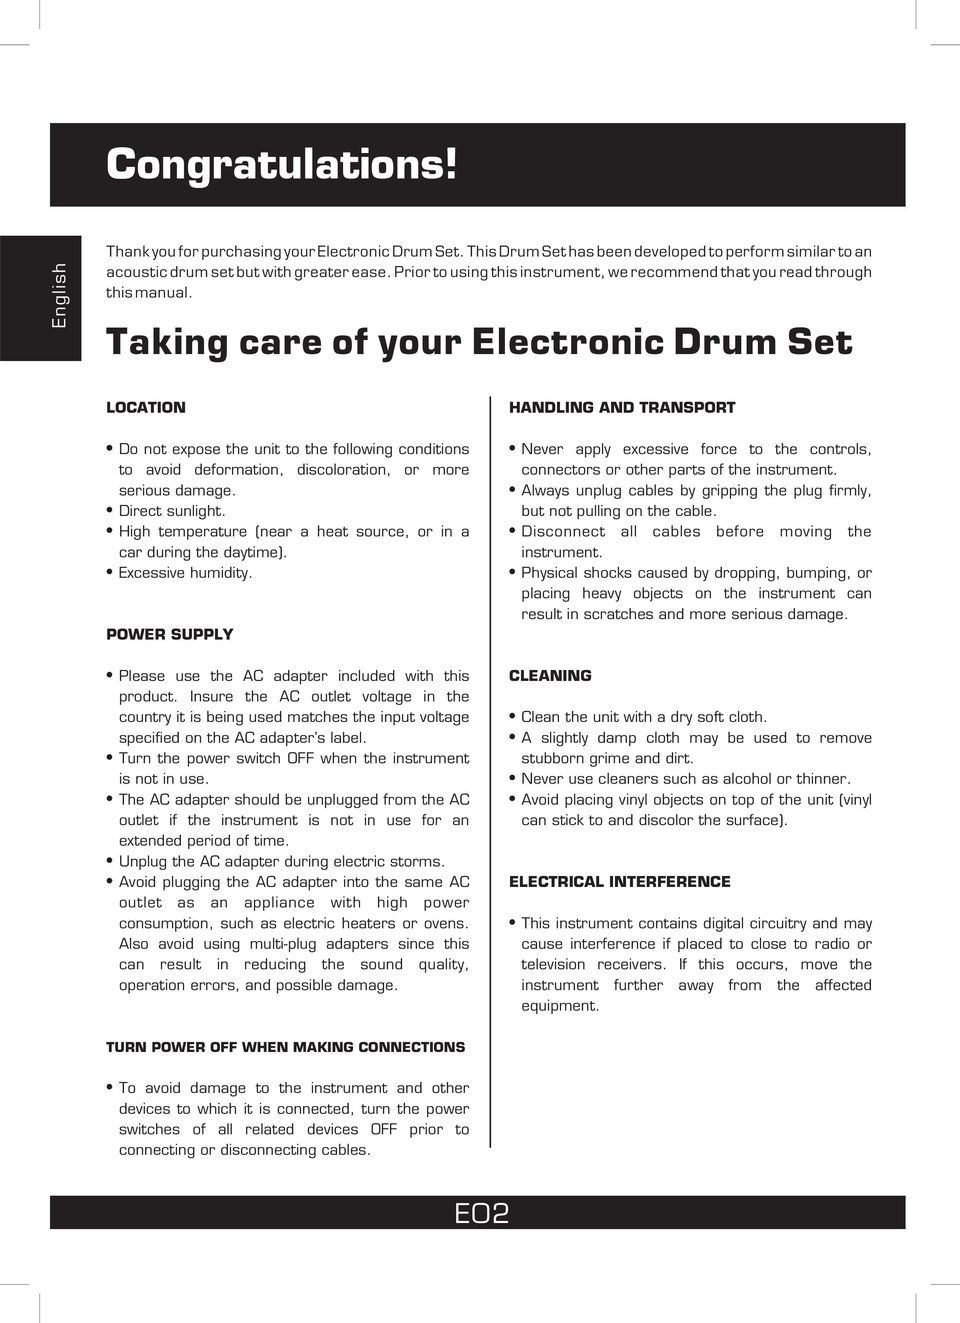 Taking care of your Electronic Drum Set LOCATION Do not expose the unit to the following conditions to avoid deformation, discoloration, or more serious damage. Direct sunlight.